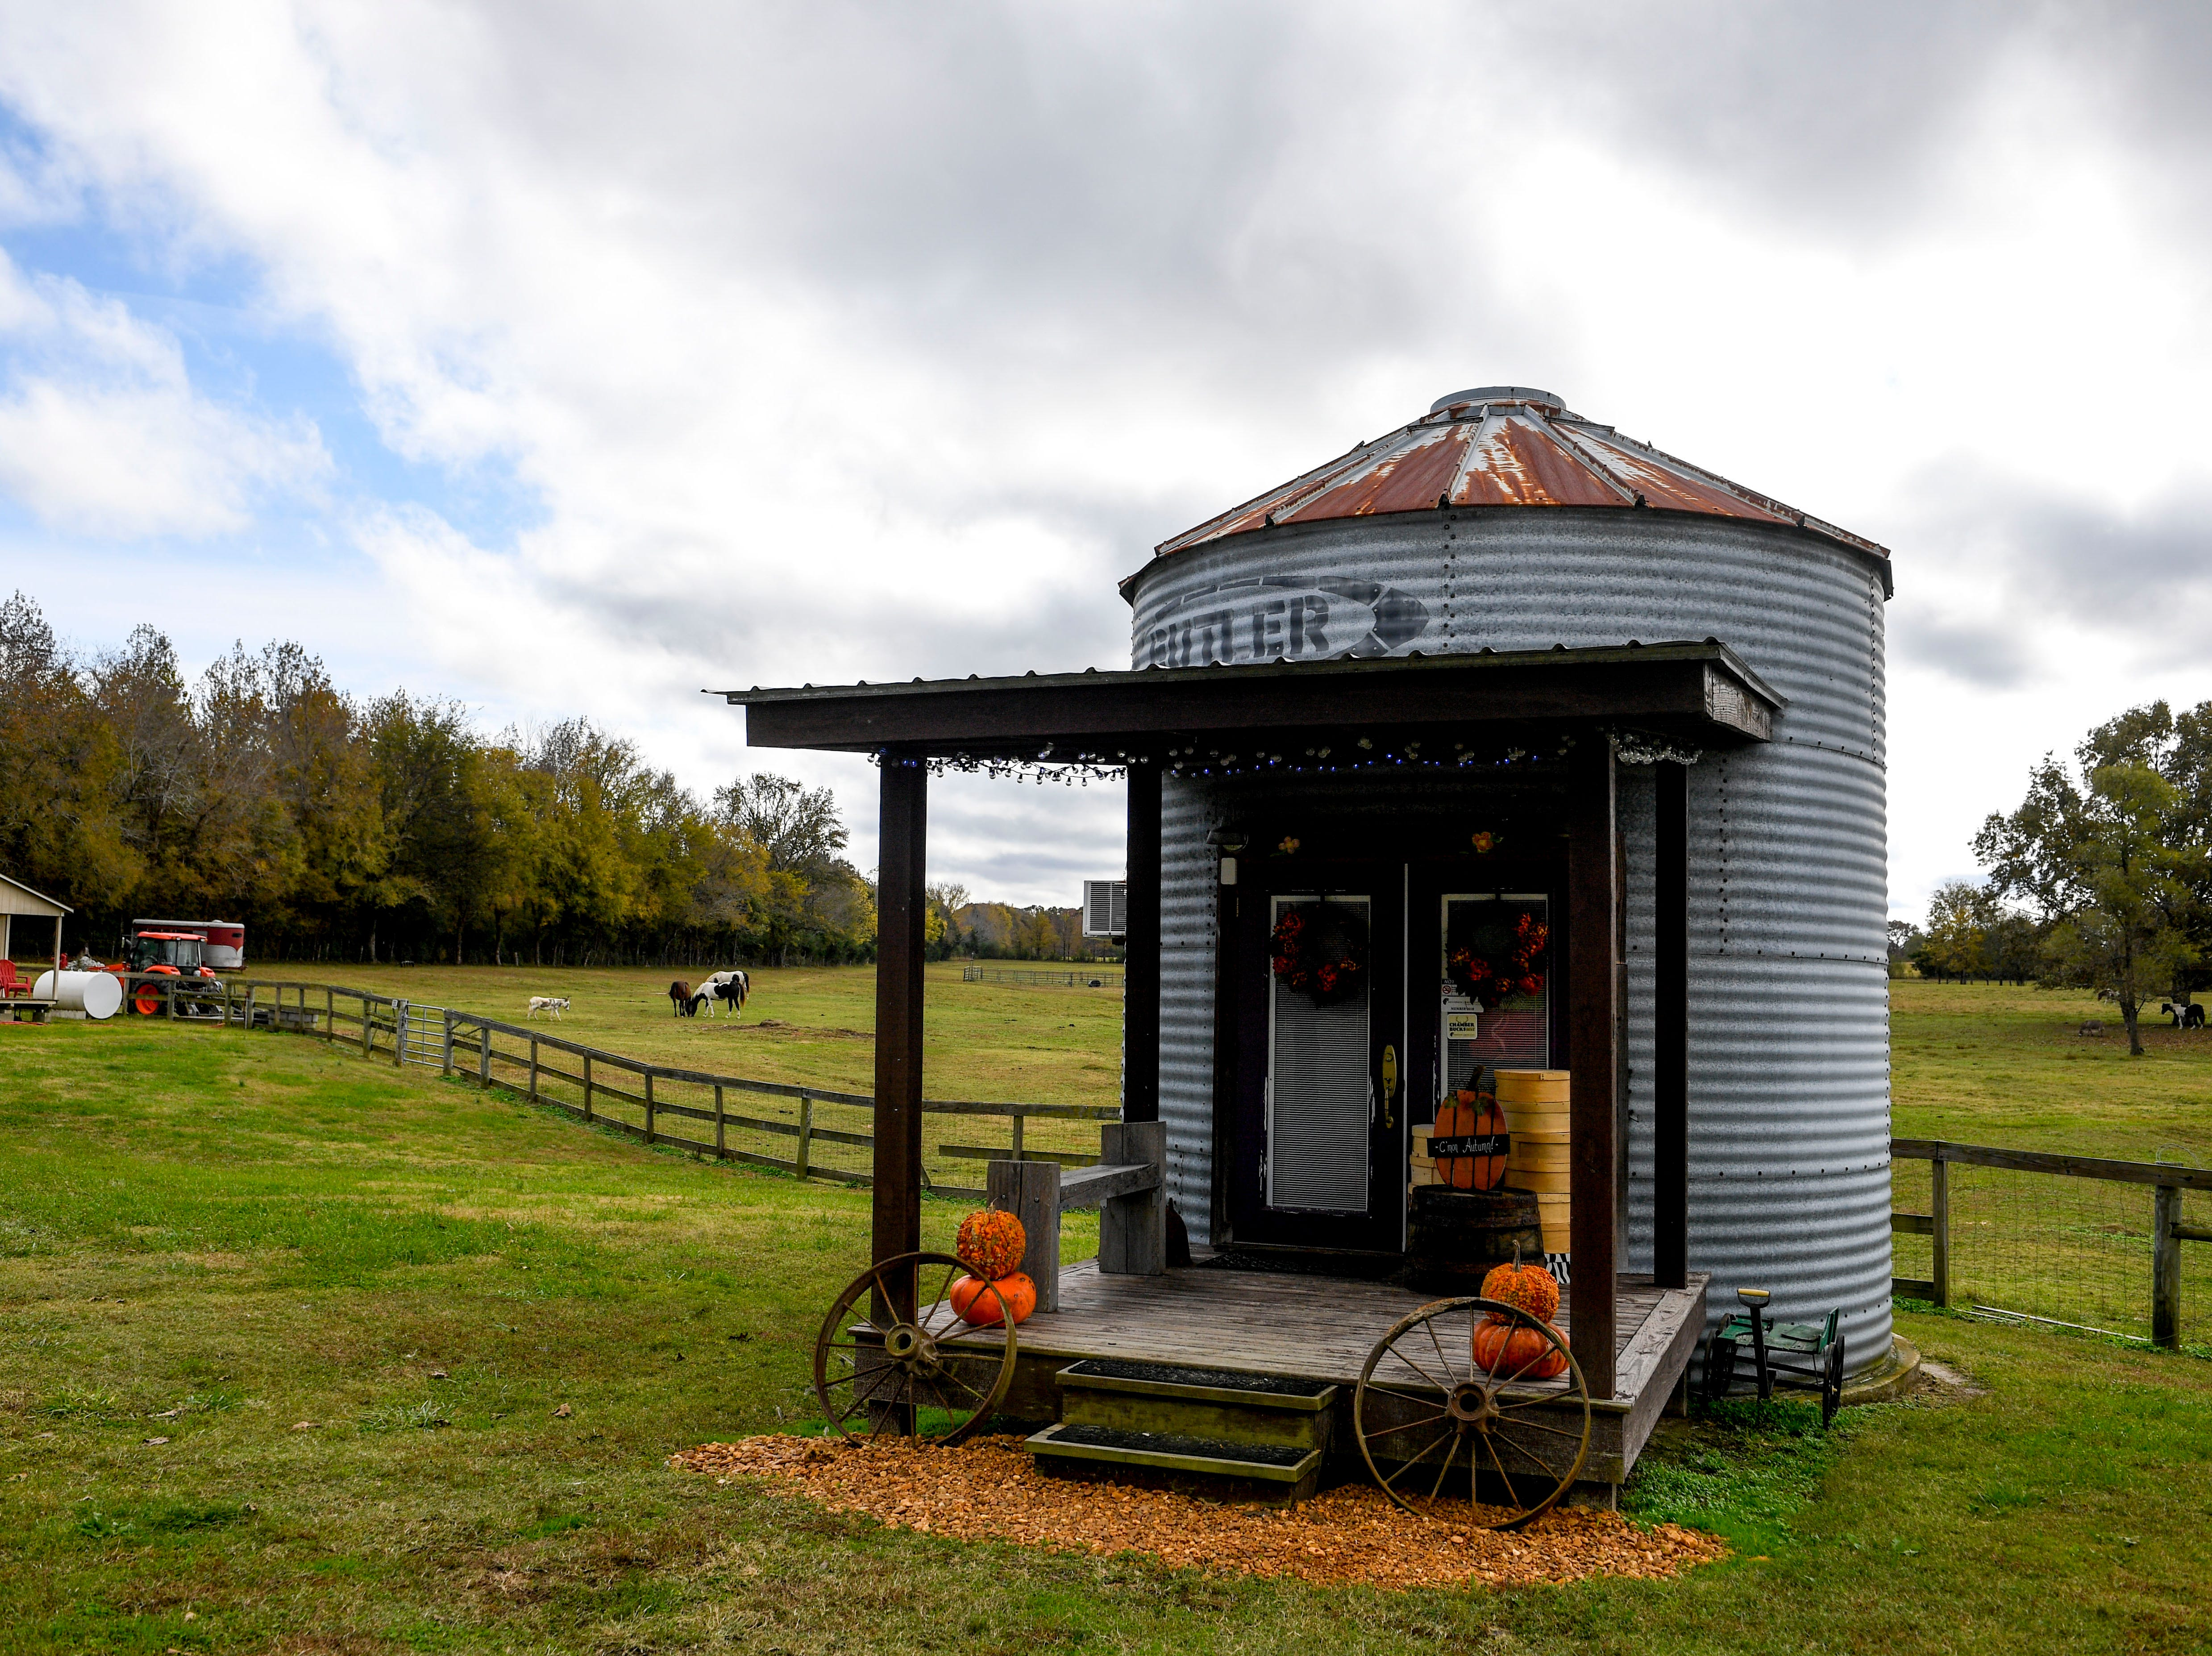 A cylindrical building where Valeria Pitoni sells her various lotions, soaps, and care products stands at the edge of a pasture at Stillwaters Farm in Henderson, Tenn., on Monday, Nov. 5, 2018.